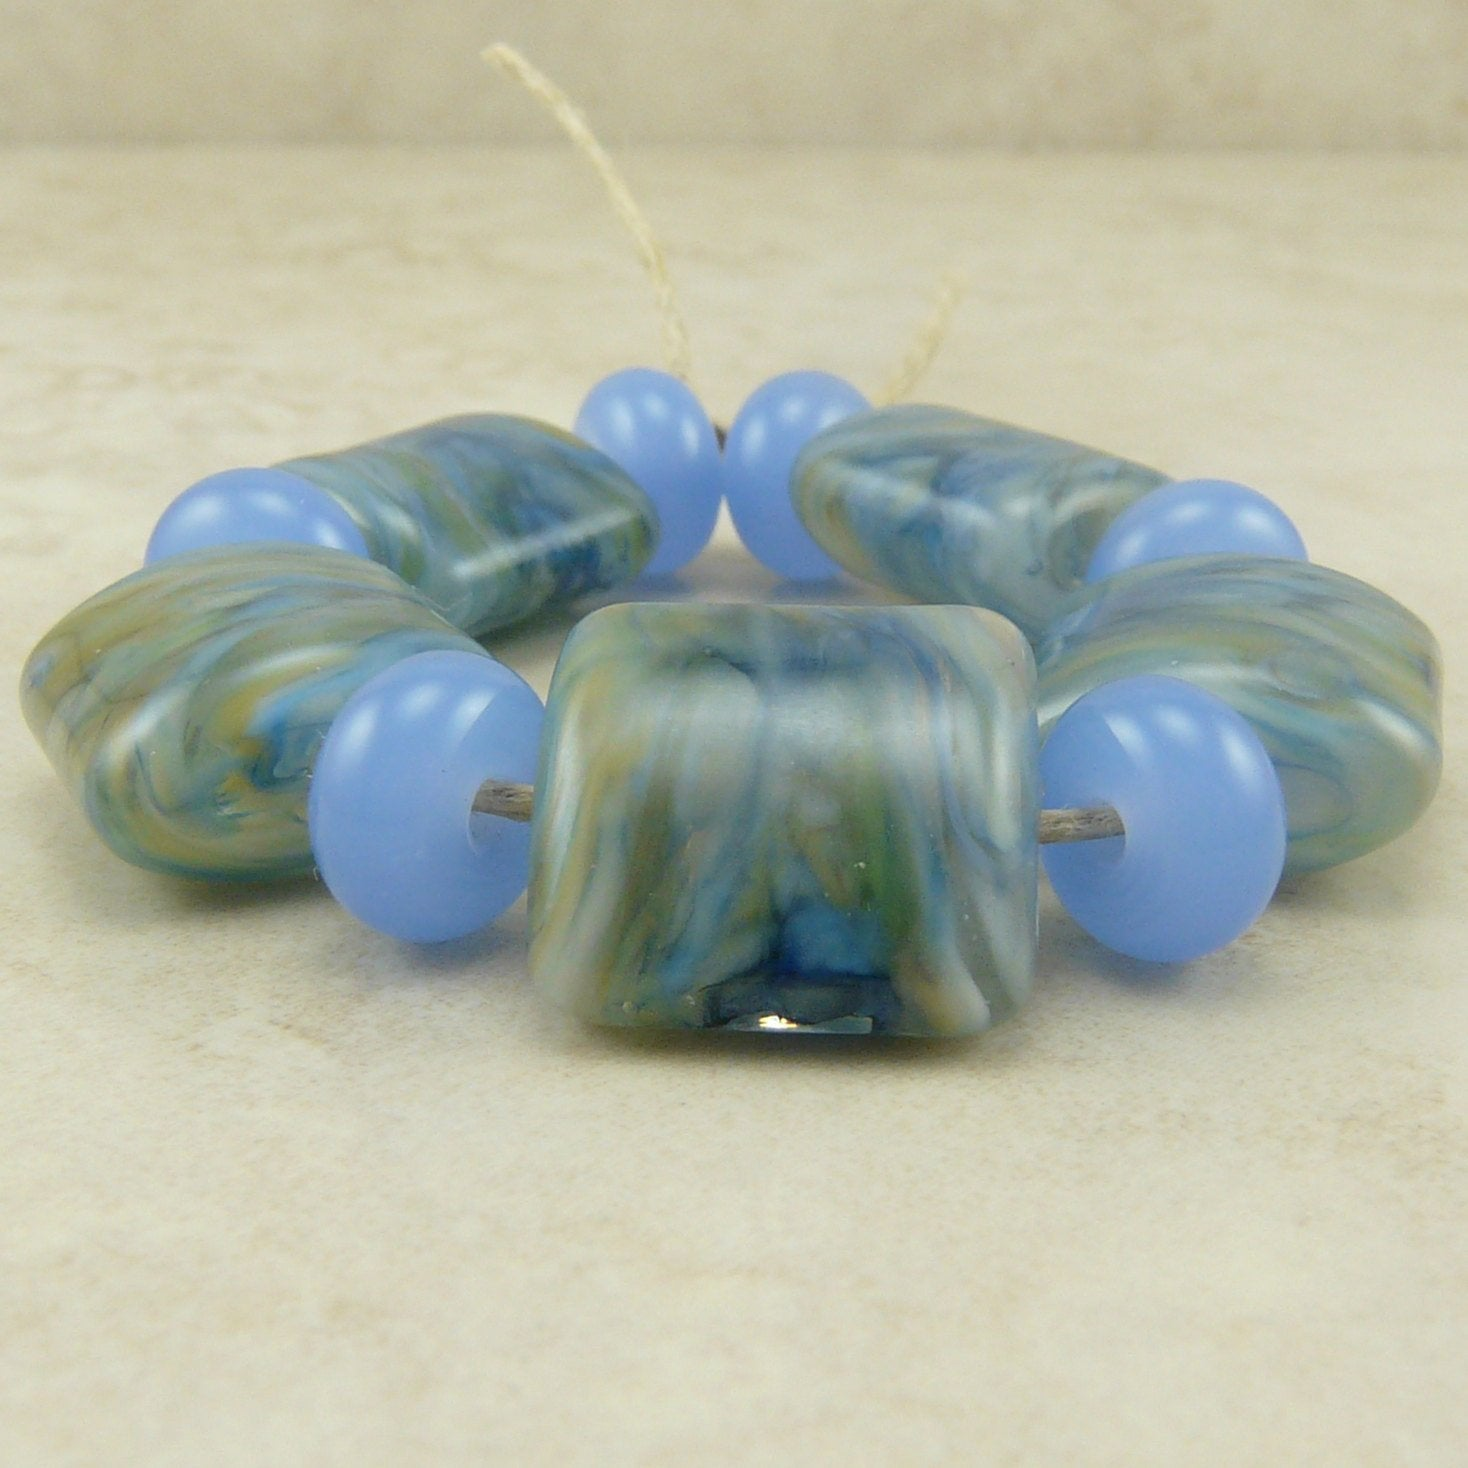 Sea Grass - Blue Green Moss - Lampwork Nugget Bead Set by Dragynsfyre Designs - SRA